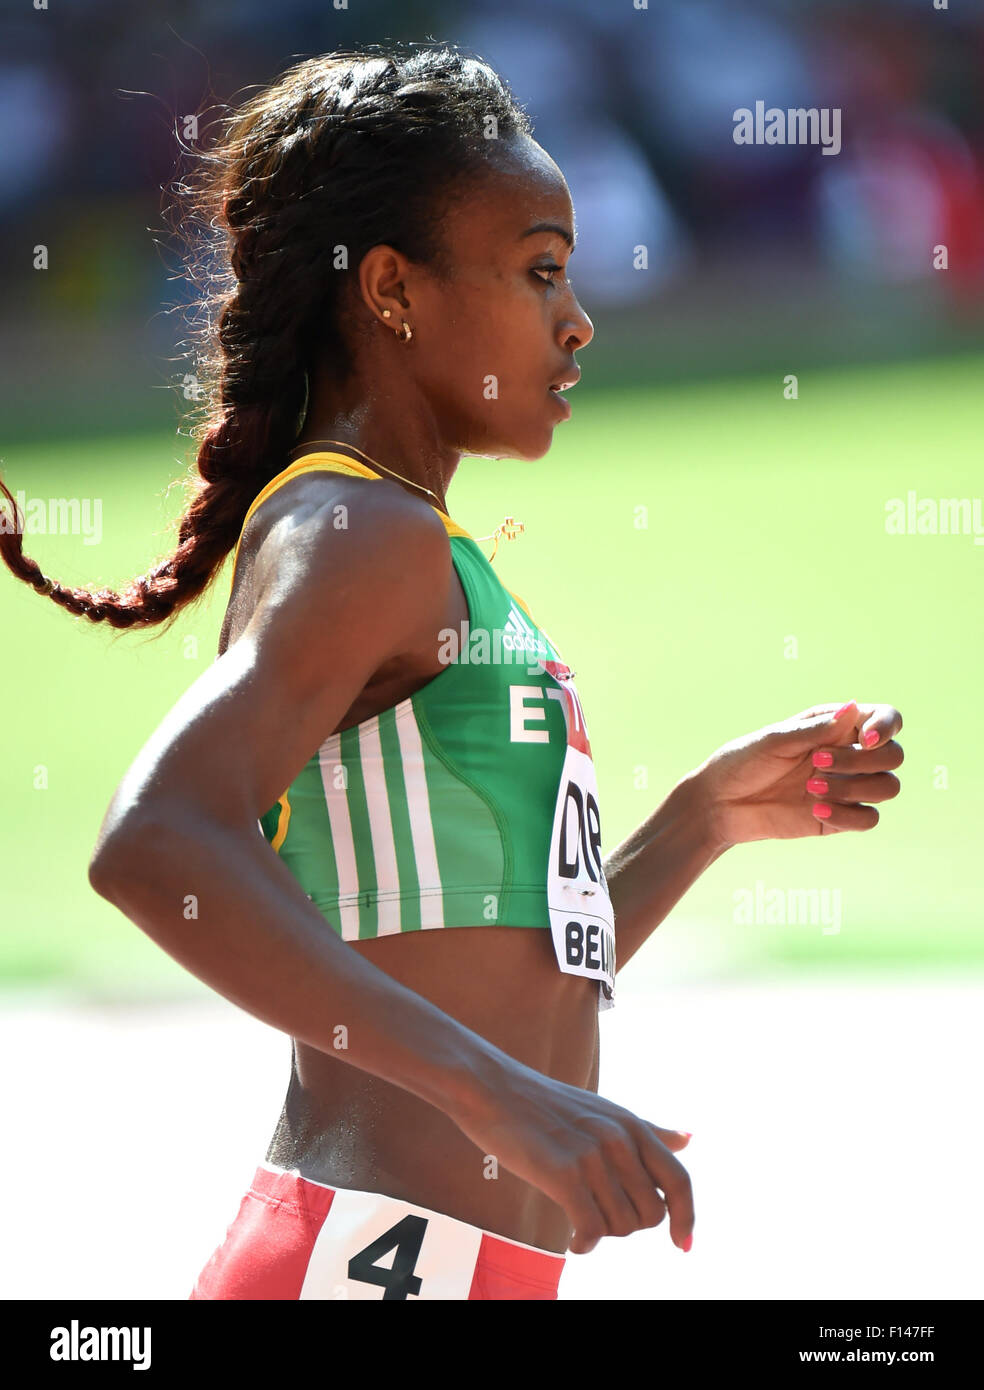 Beijing, China. 27th Aug, 2015. Genzebe Dibaba of Ethiopia competes during the women's 5000m heat at the 2015 IAAF Stock Photo